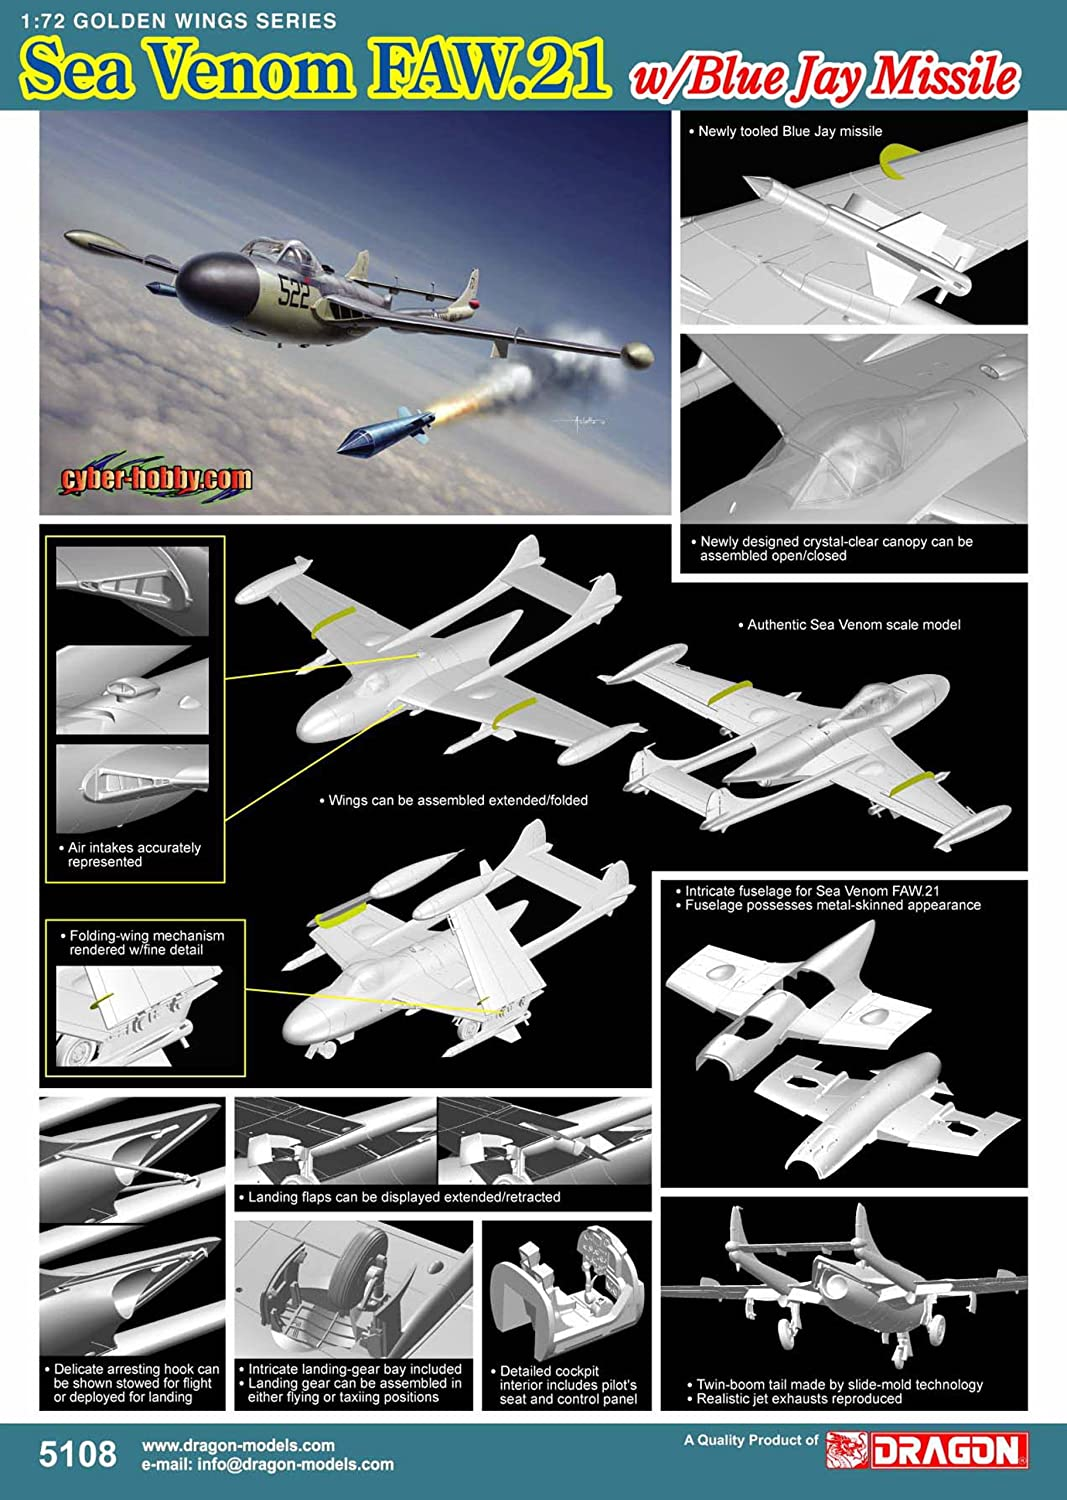 Cyber Hobby Models Sea Venom FAW.21 Model Building Kit with Blue Jay Missile CHC-5108 Scale 1//72 Dragon Models USA Inc